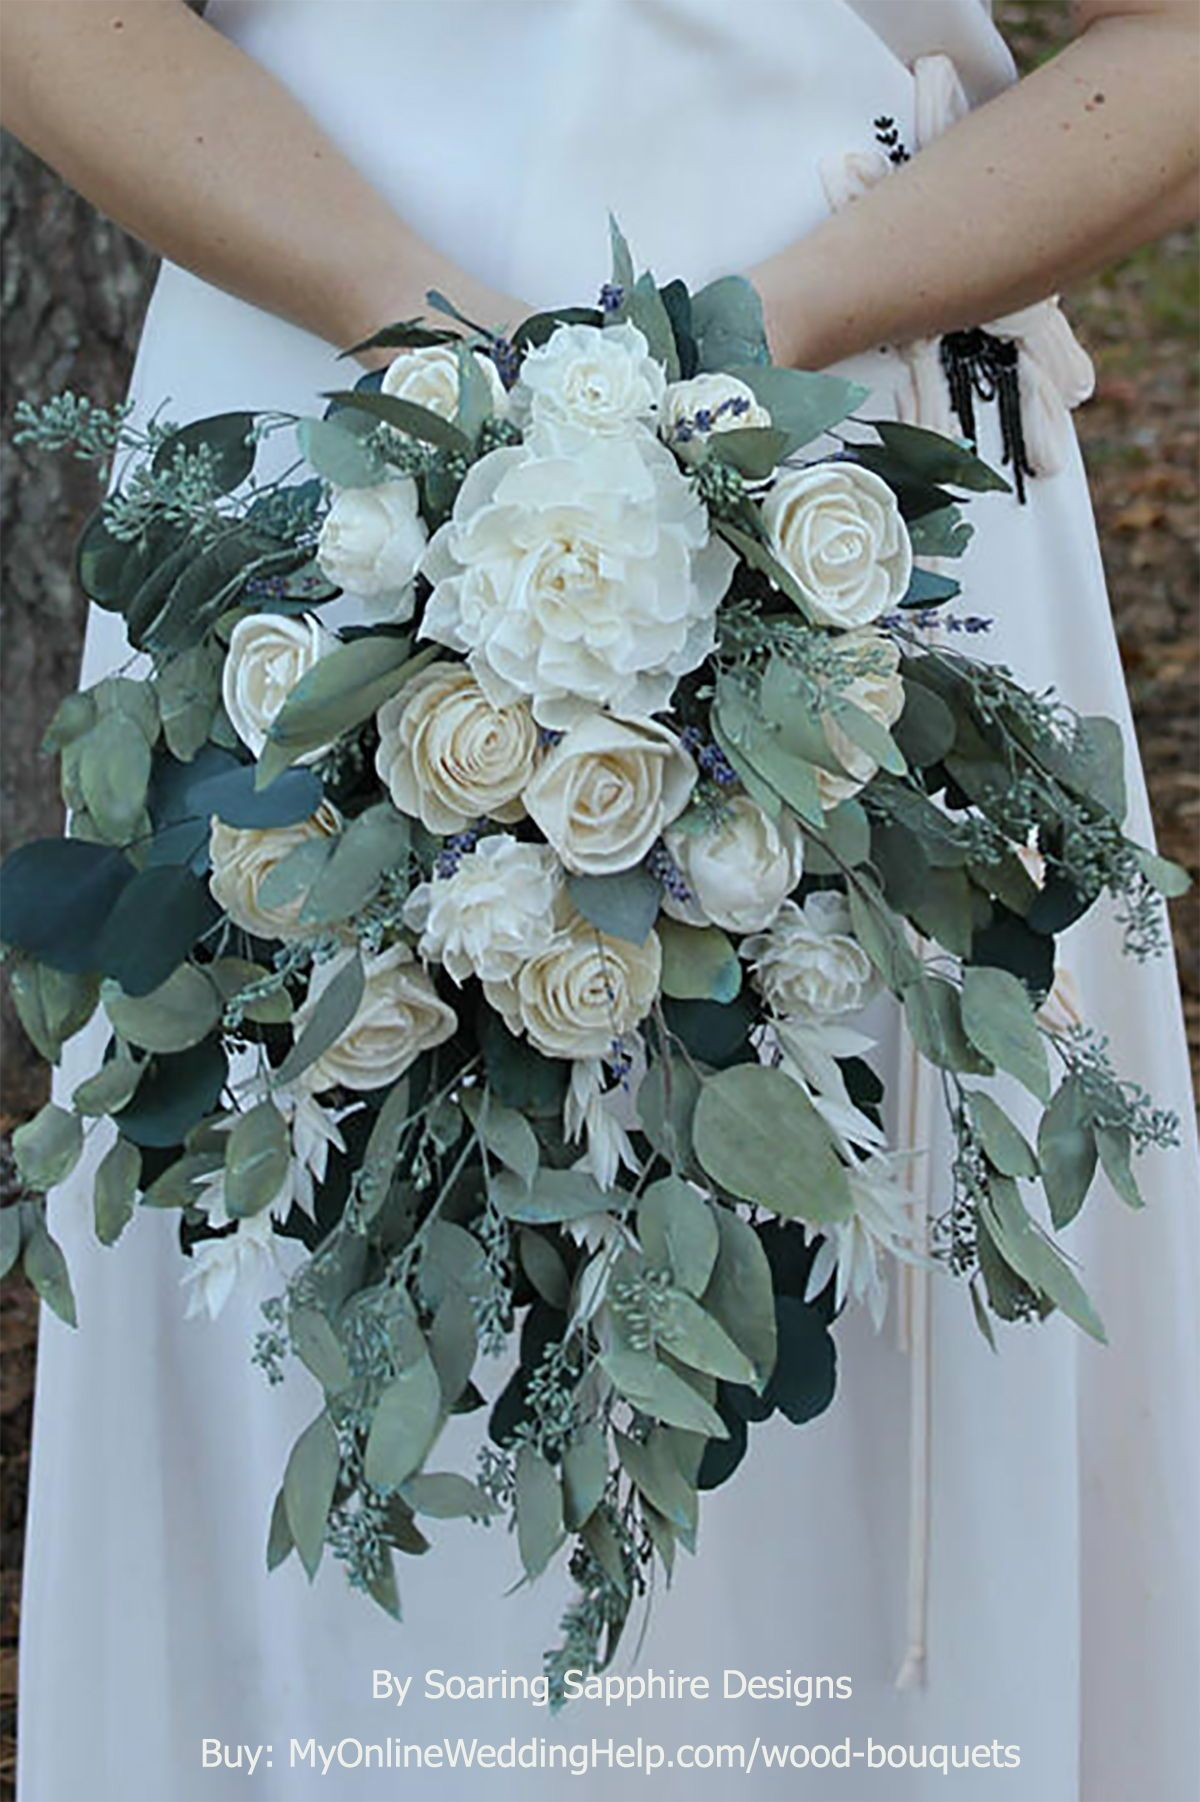 Wood Sola Flower Bouquets Page 1 Of 1 In 2020 Wedding Flower